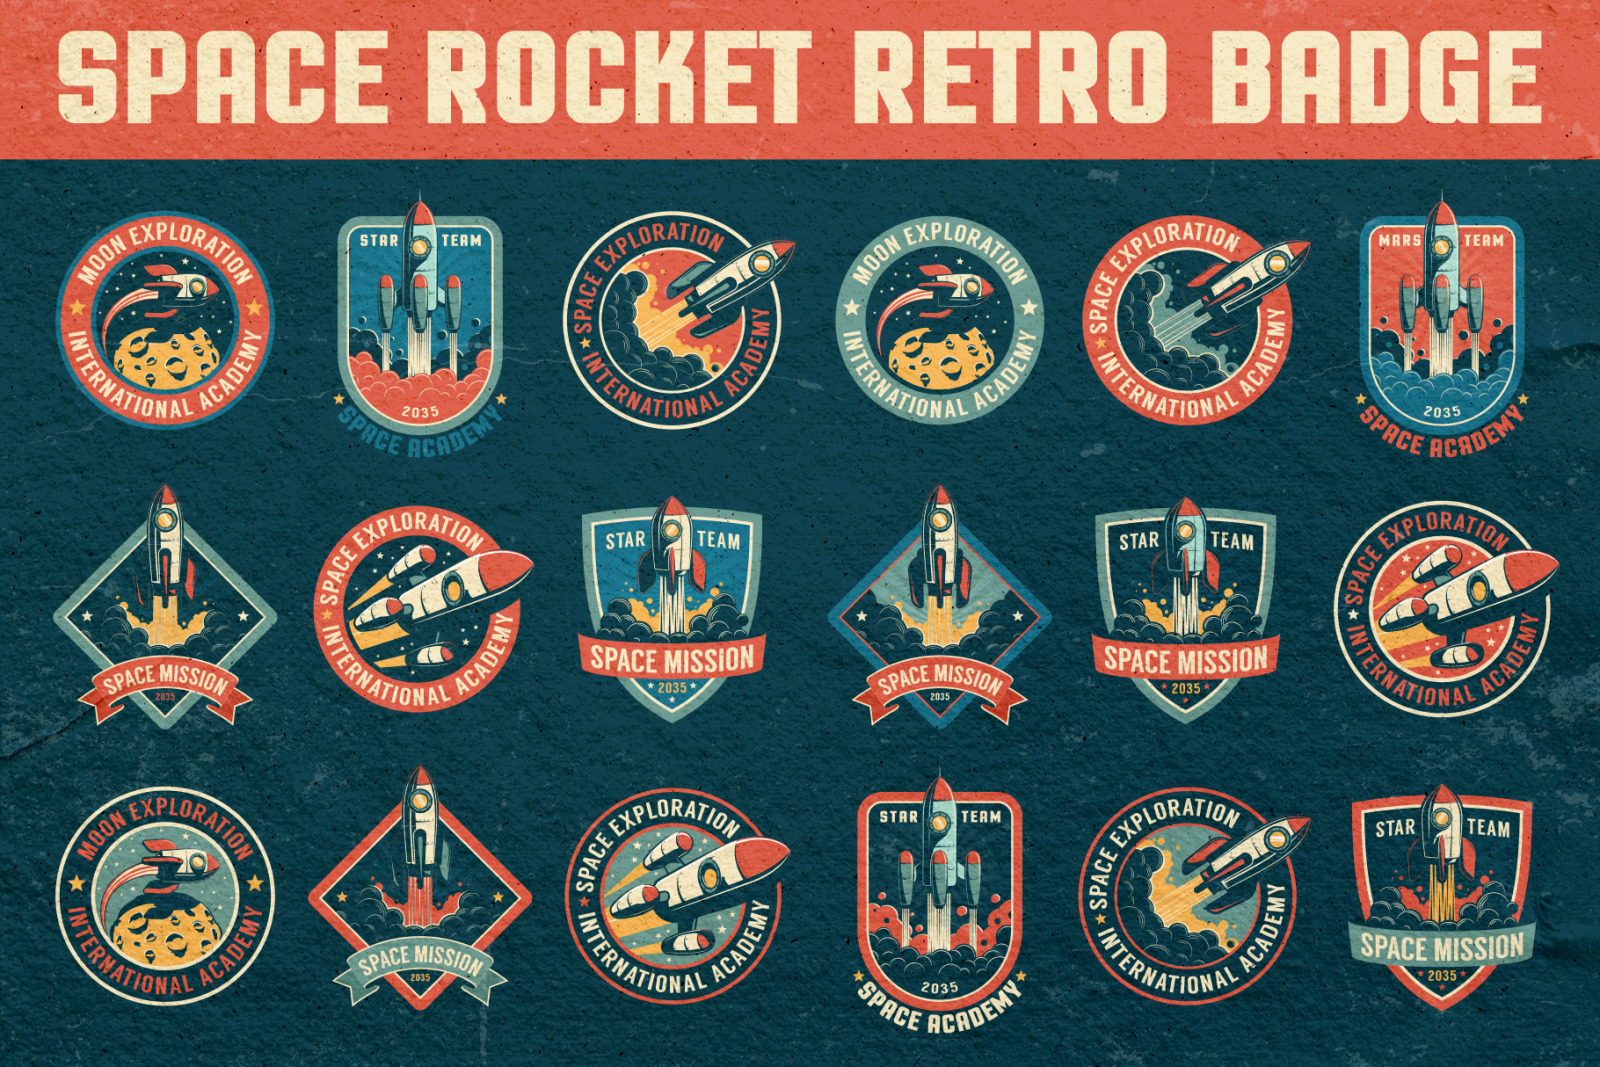 Space Rocket Retro Badge